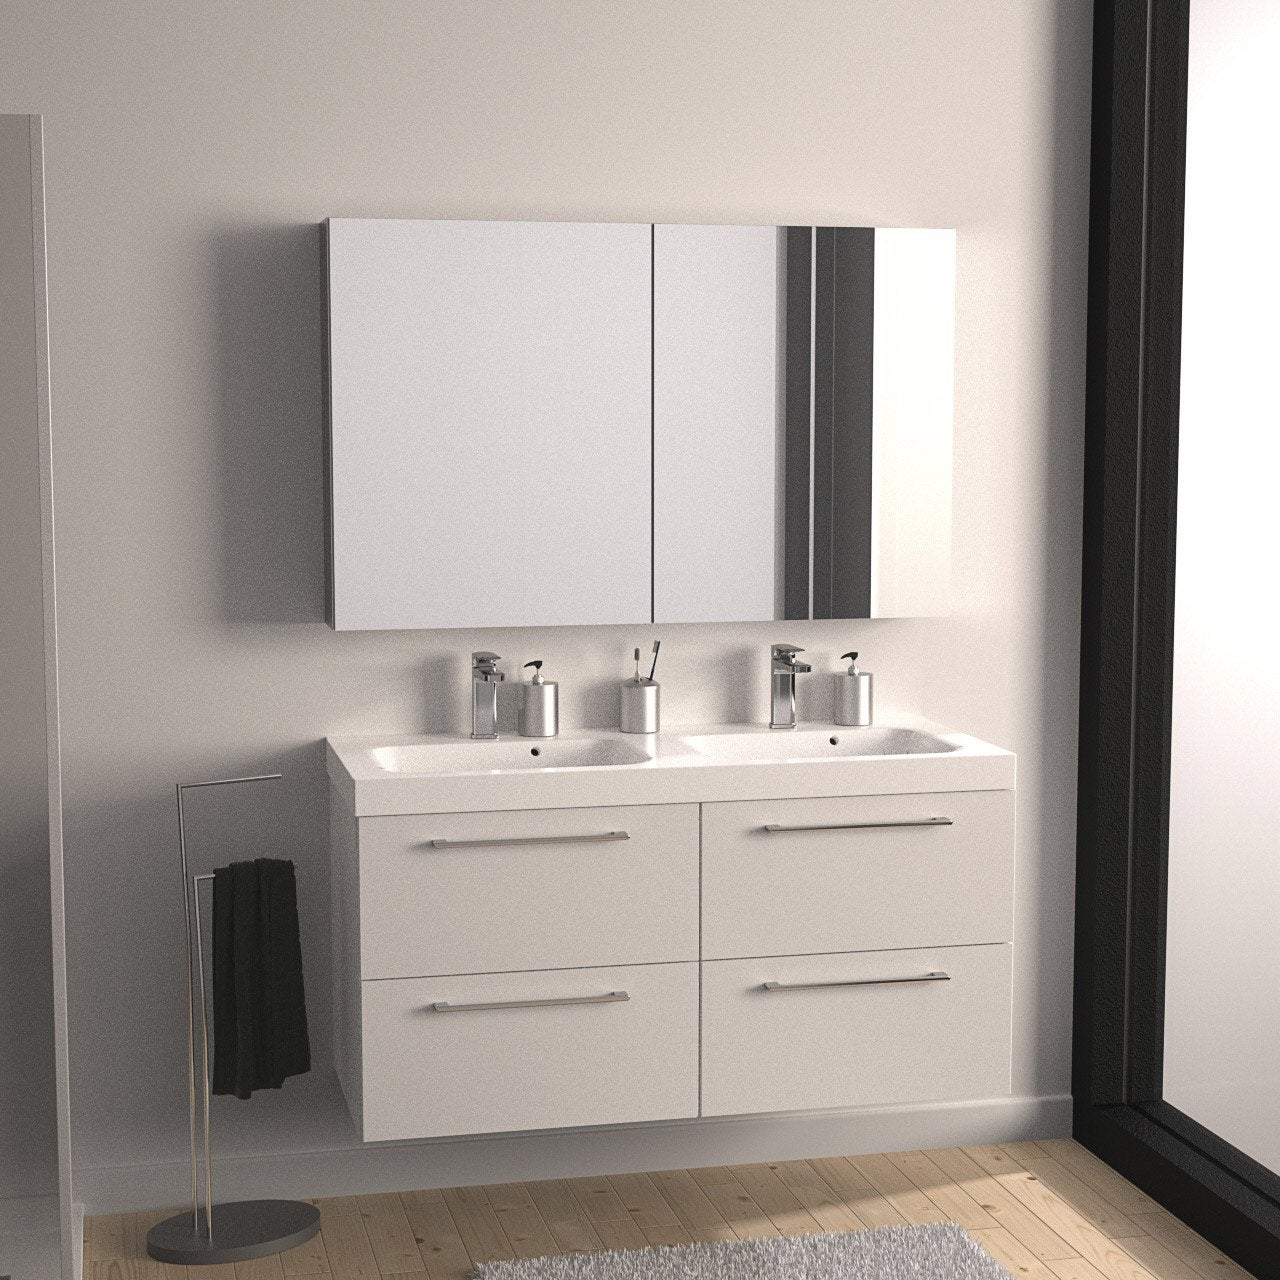 meuble de salle de bains plus de 120 blanc beige naturels remix leroy merlin. Black Bedroom Furniture Sets. Home Design Ideas